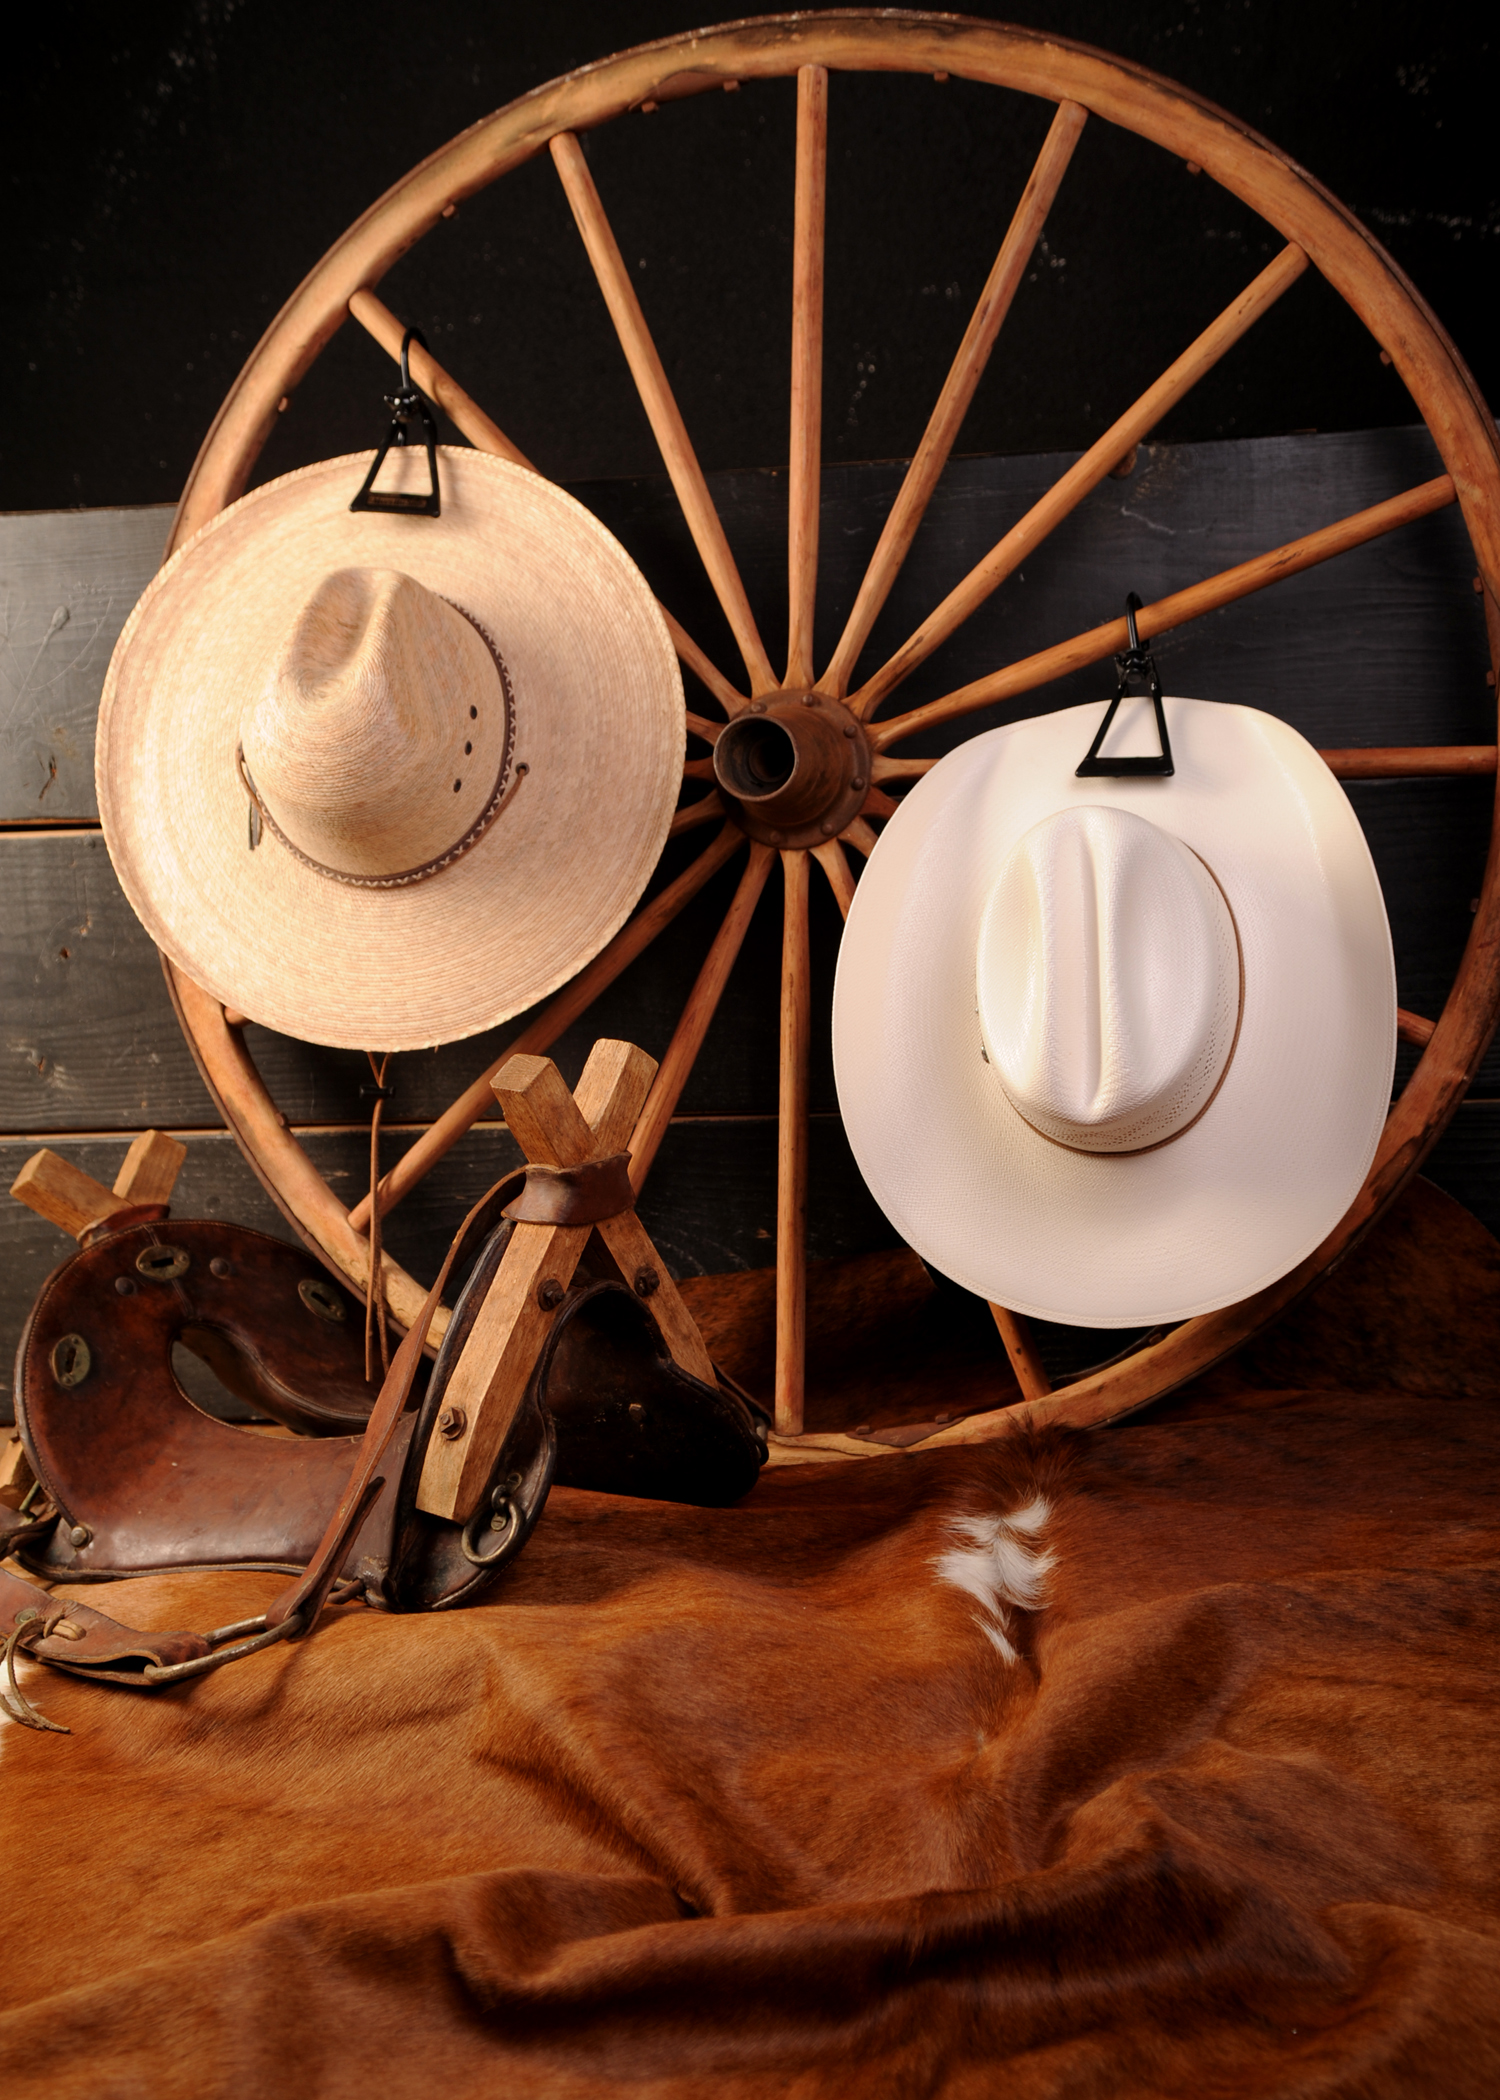 Hat hanger with hats on wagon wheel